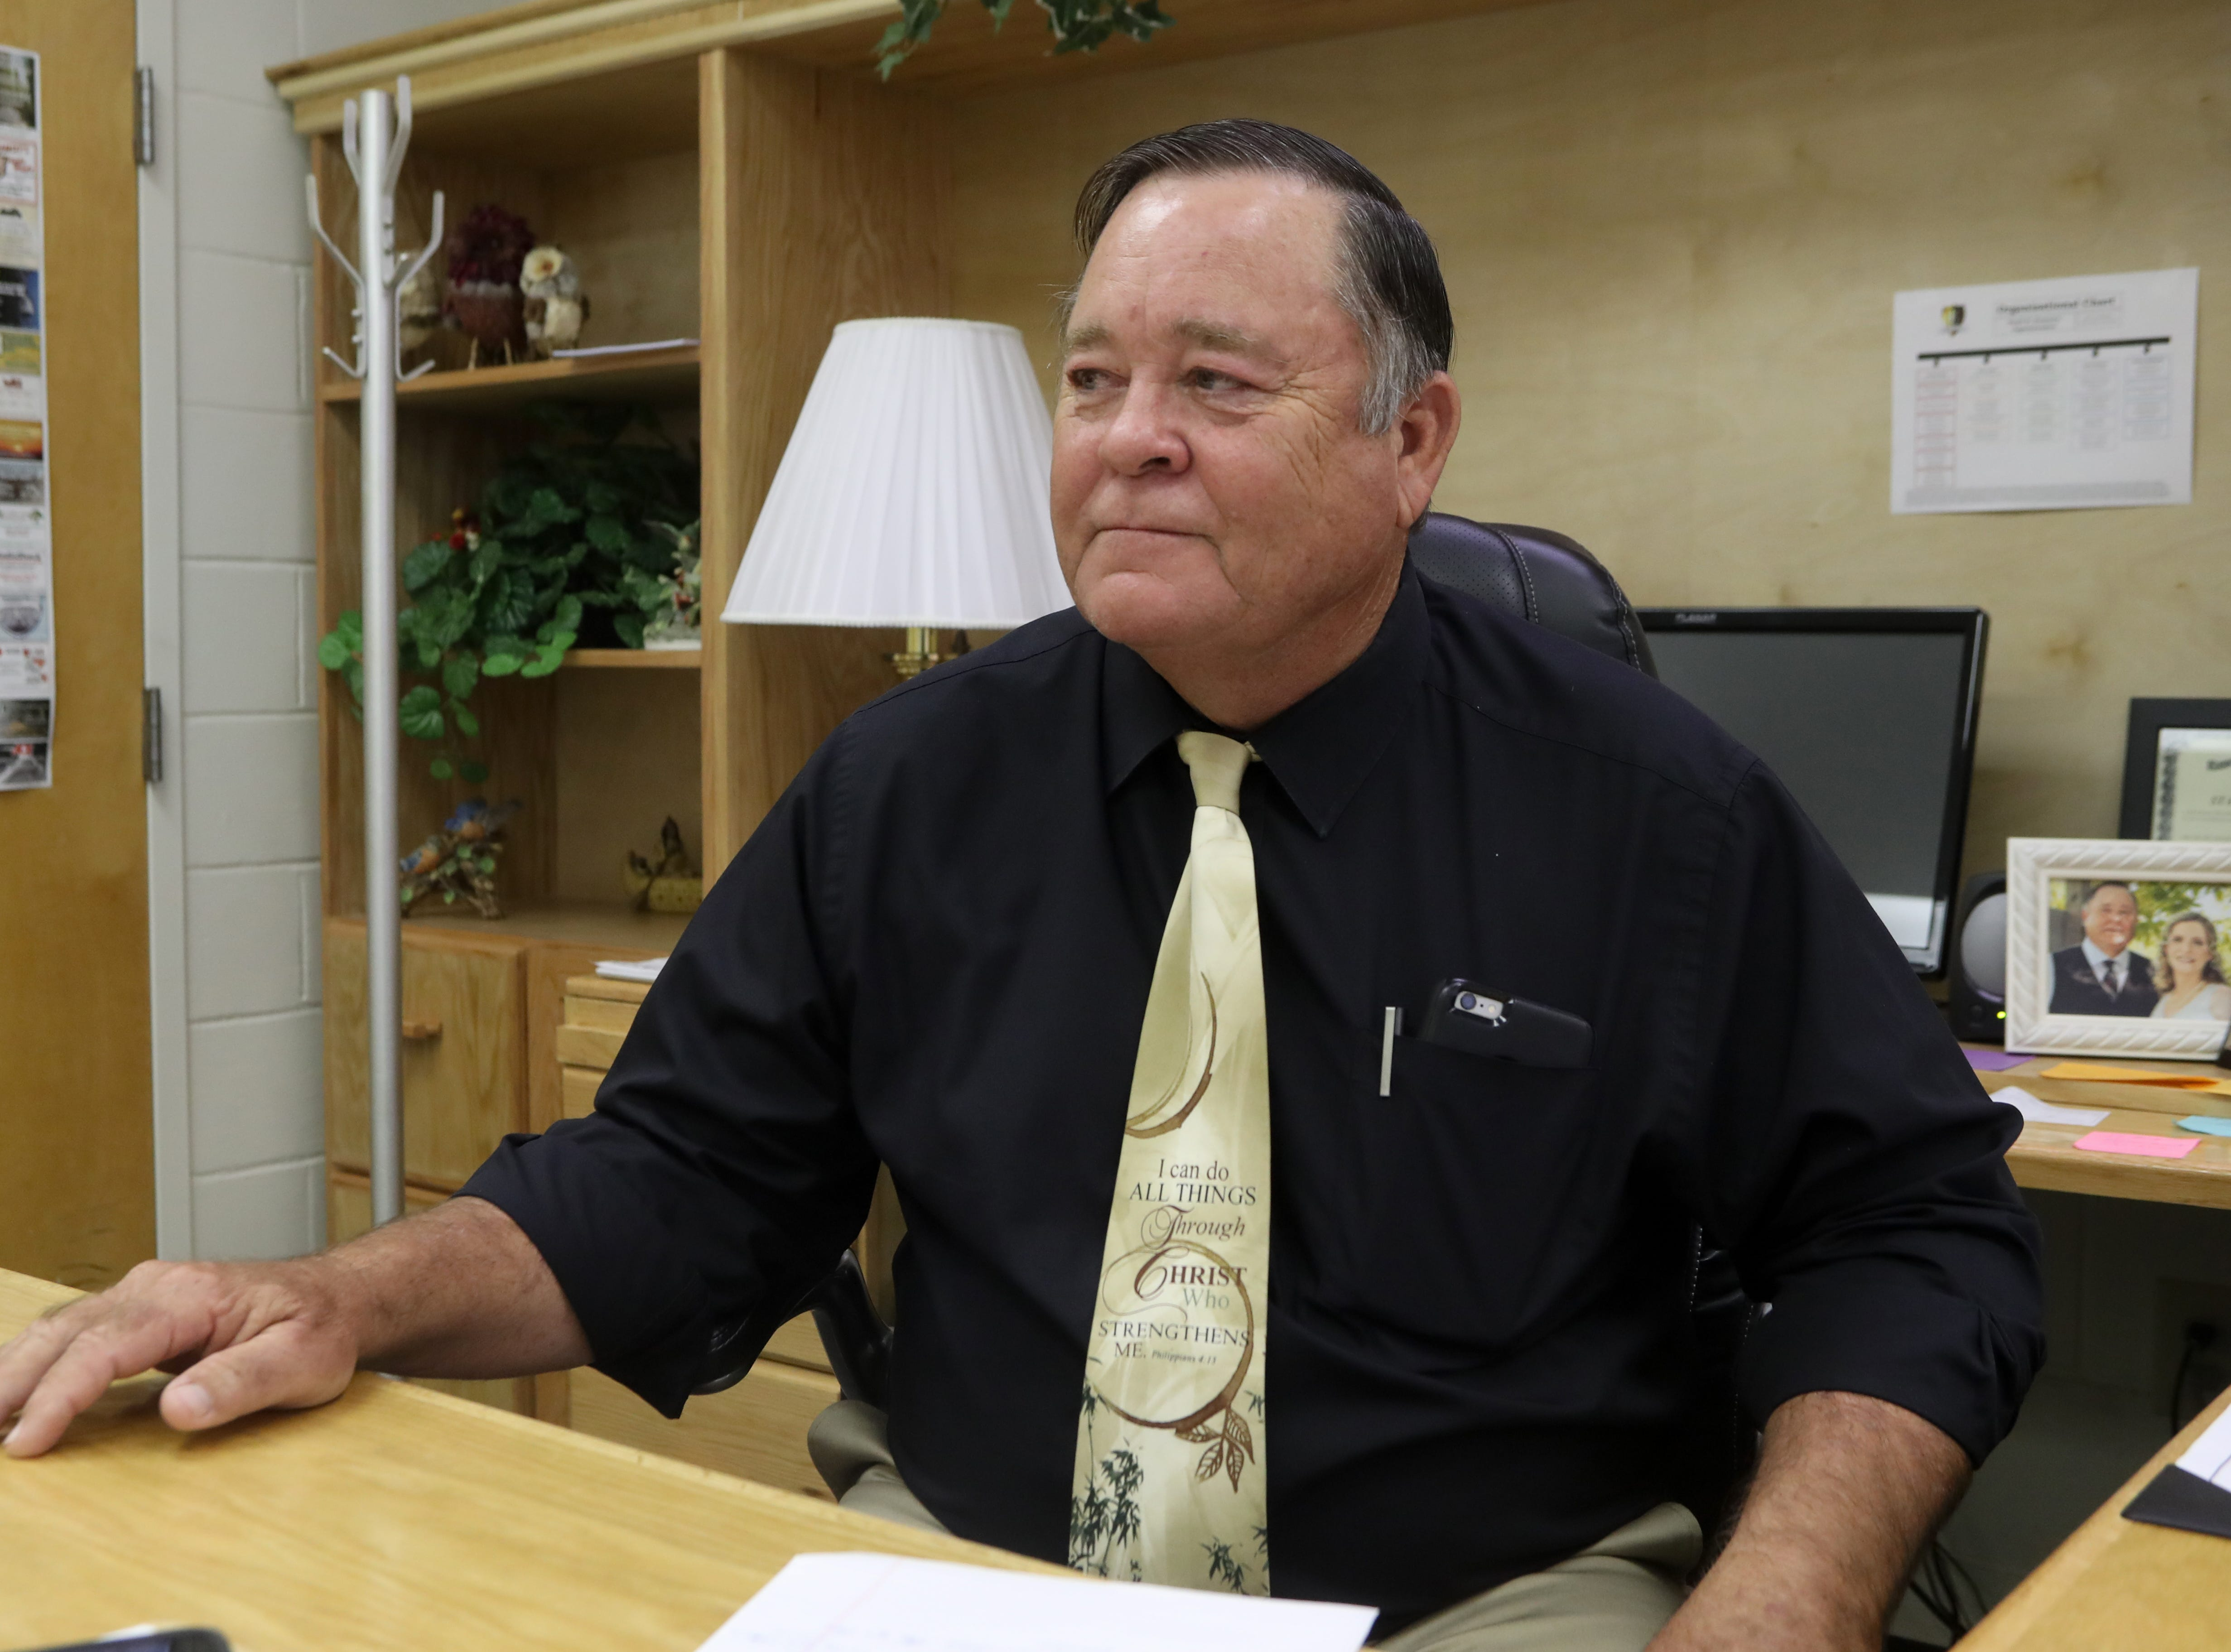 Liberty County Schools Superintendent David Summers talks about the tragic loss of Liberty County High School Head Baseball Coach Corey Crum and his wife Shana Crum, also an employee of the school district. The couple died after being electrocuted while working at the baseball field Sunday, March 10, 2019. Their son, 14, was also electrocuted but survived.